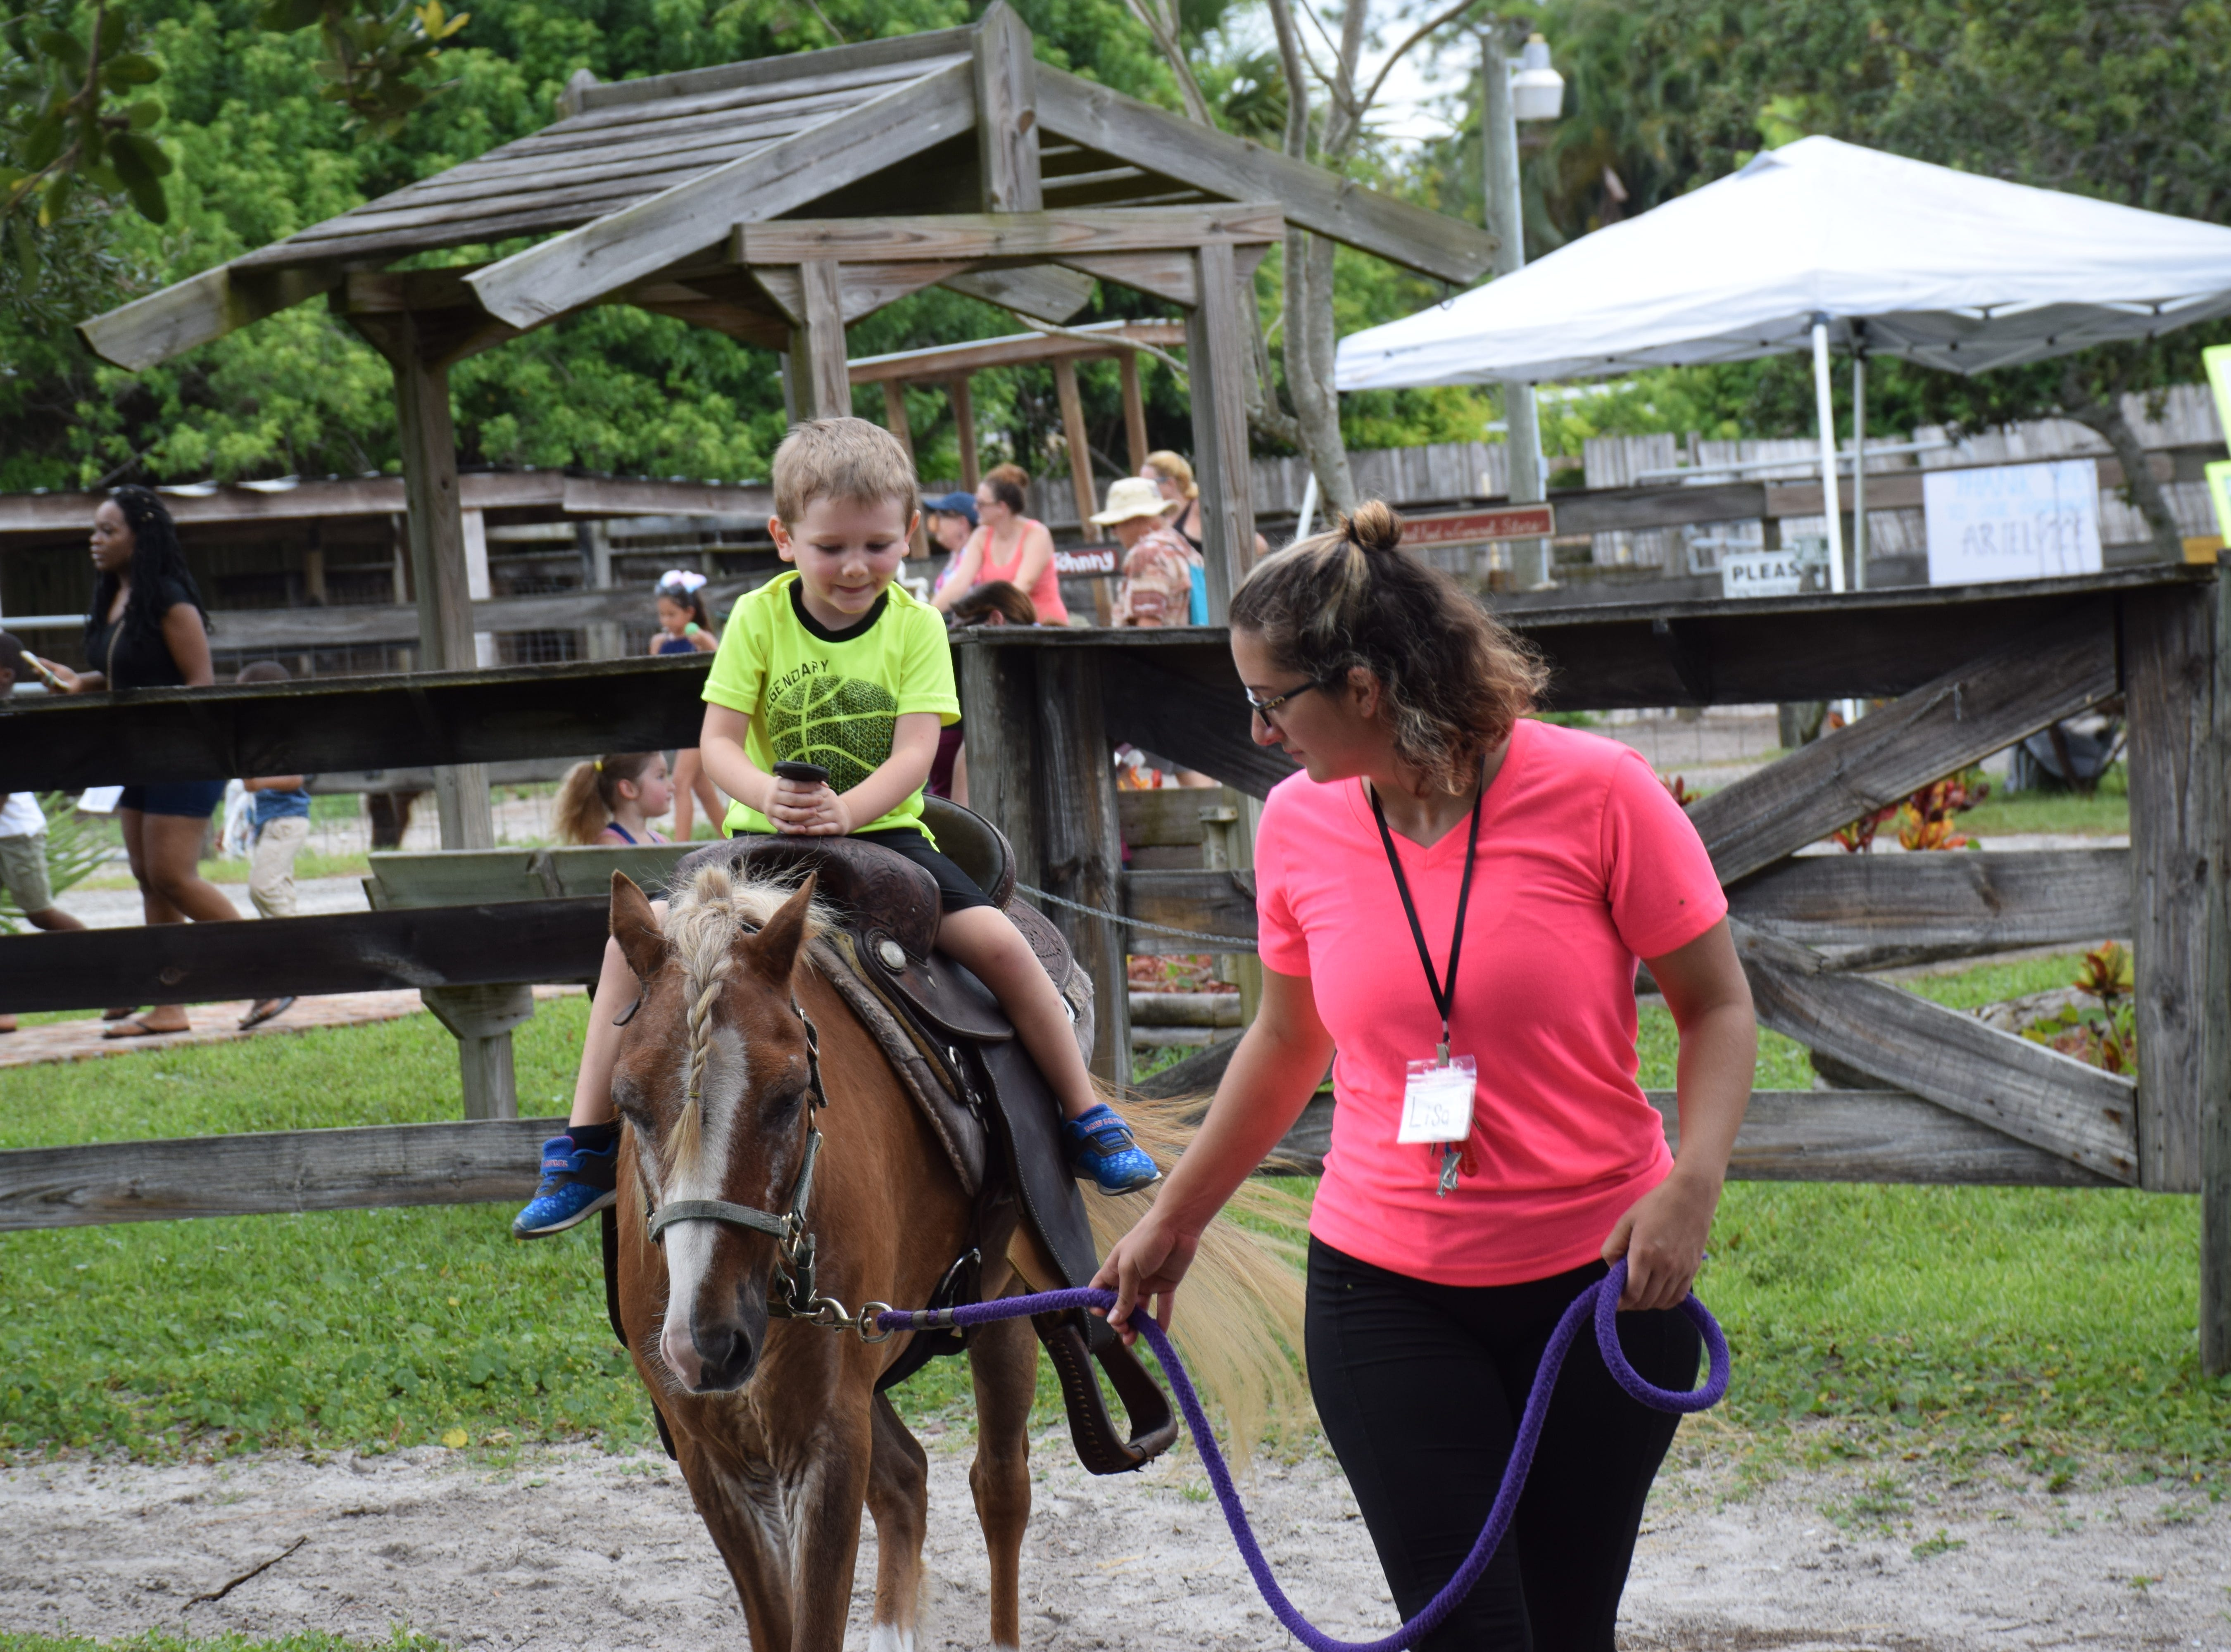 The pony ride was one of the favorite attractions.